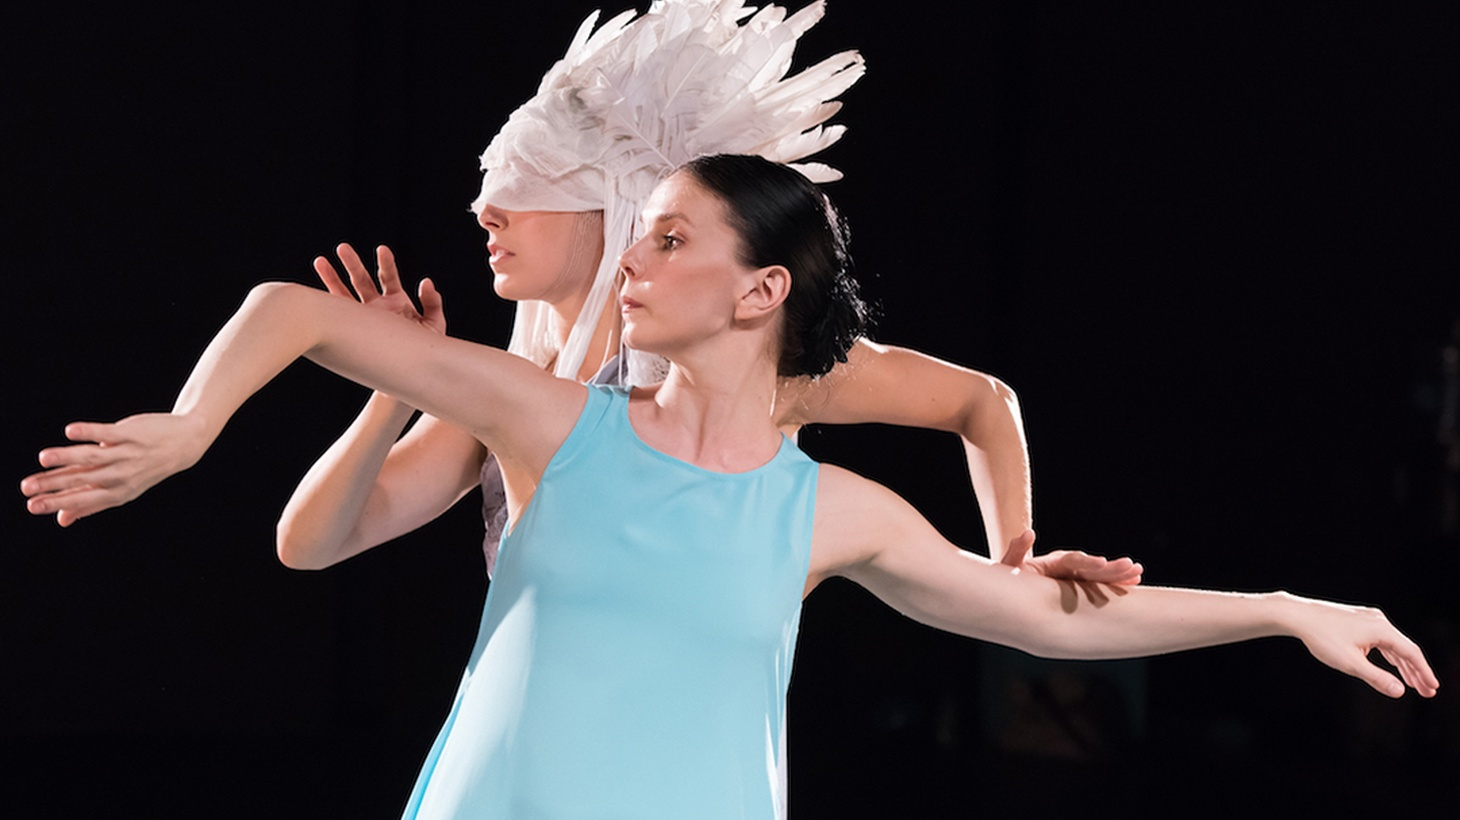 """Edward Goldman talks about the world premiere of the dance performance """"Isadora"""" at Segerstrom Center and metal sculptures by Wendell Dayton """"dancing"""" at Blum & Poe gallery."""